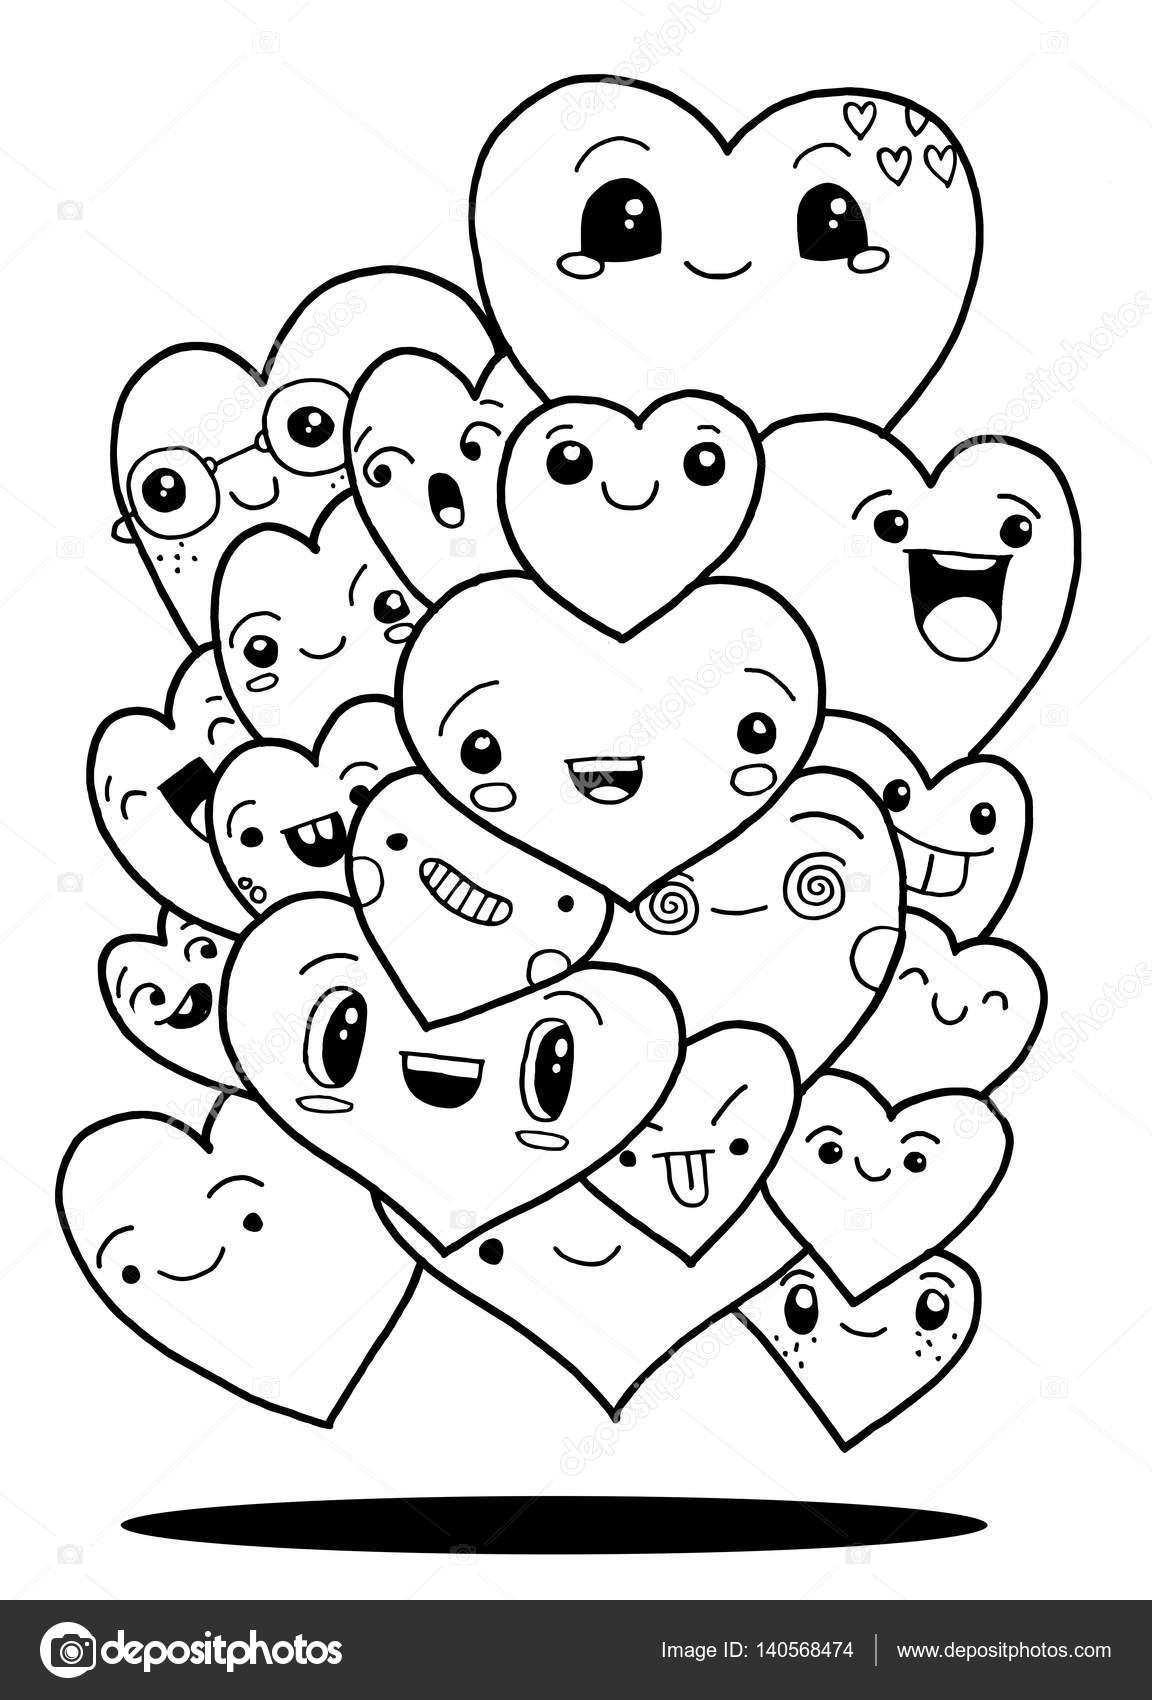 Crowd Of Funny Heart Doodle Background For Your Design Sketch On Note Paper Stock Vector C 9george 140568474 Download transparent heart doodle png for free on pngkey.com. crowd of funny heart doodle background for your design sketch on note paper stock vector c 9george 140568474